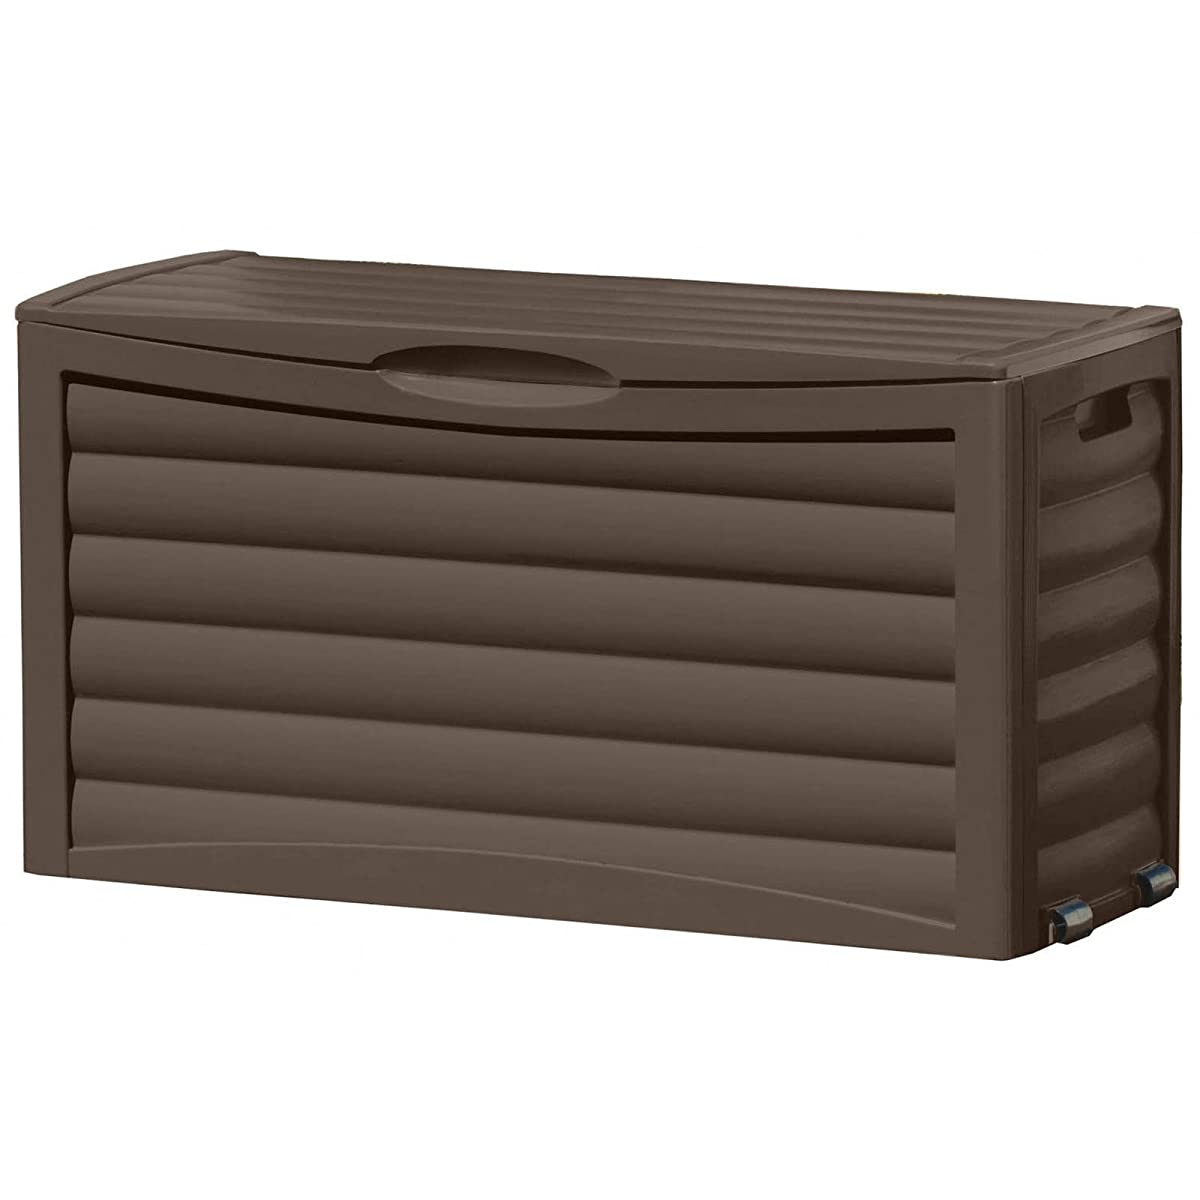 Suncast Resin 63 Gallon Deck Box